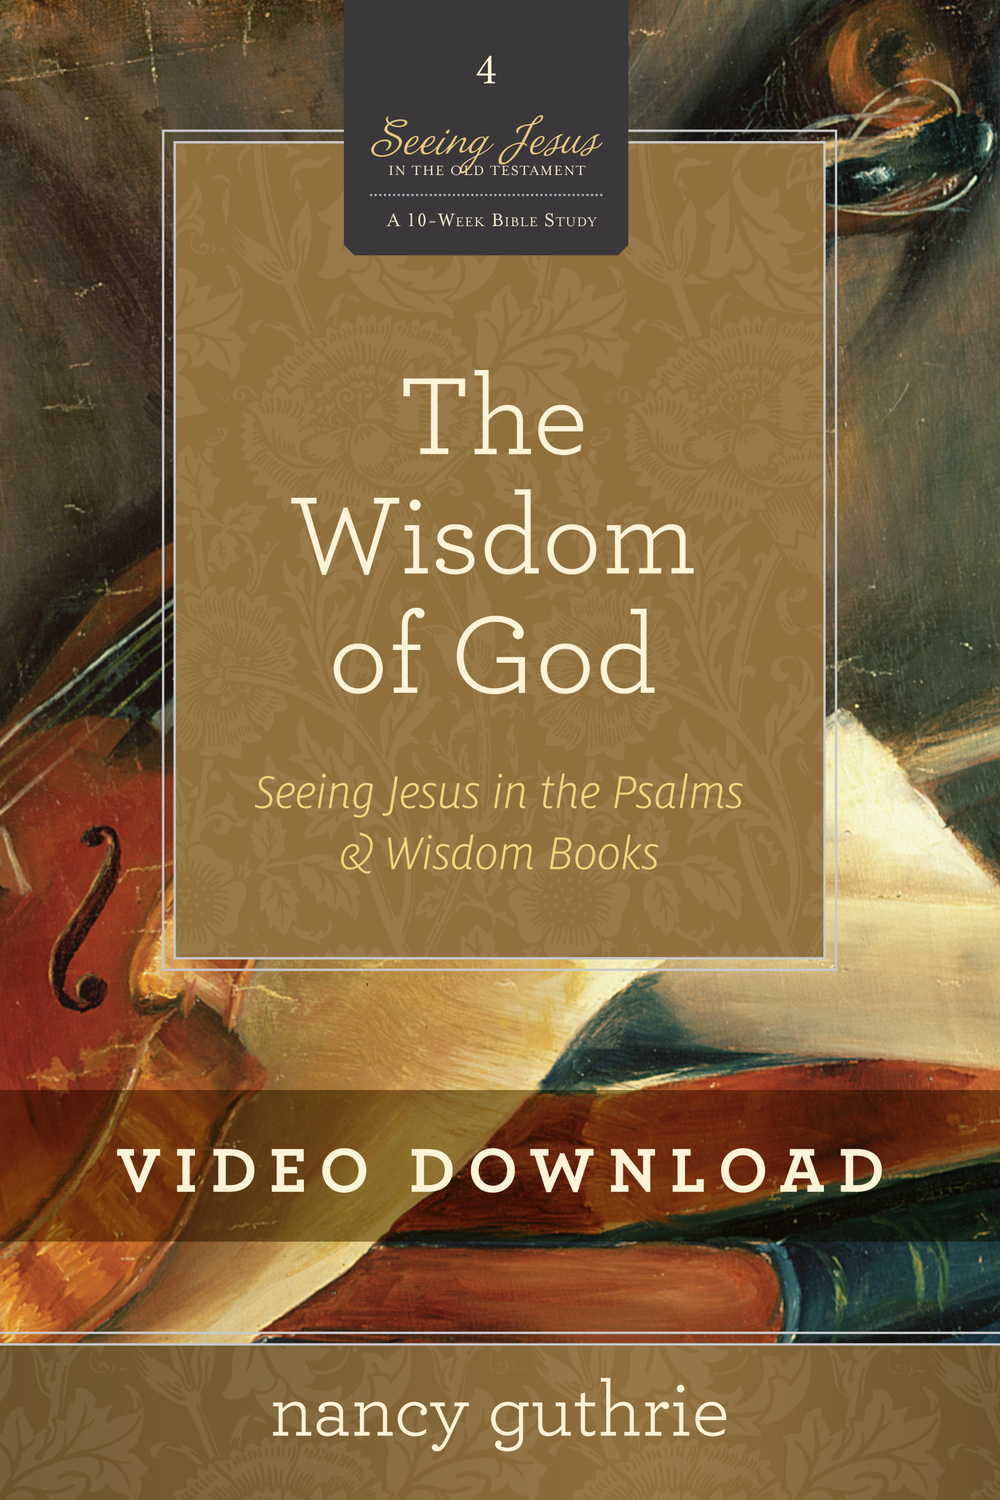 The Wisdom of God Video Session 1 Download